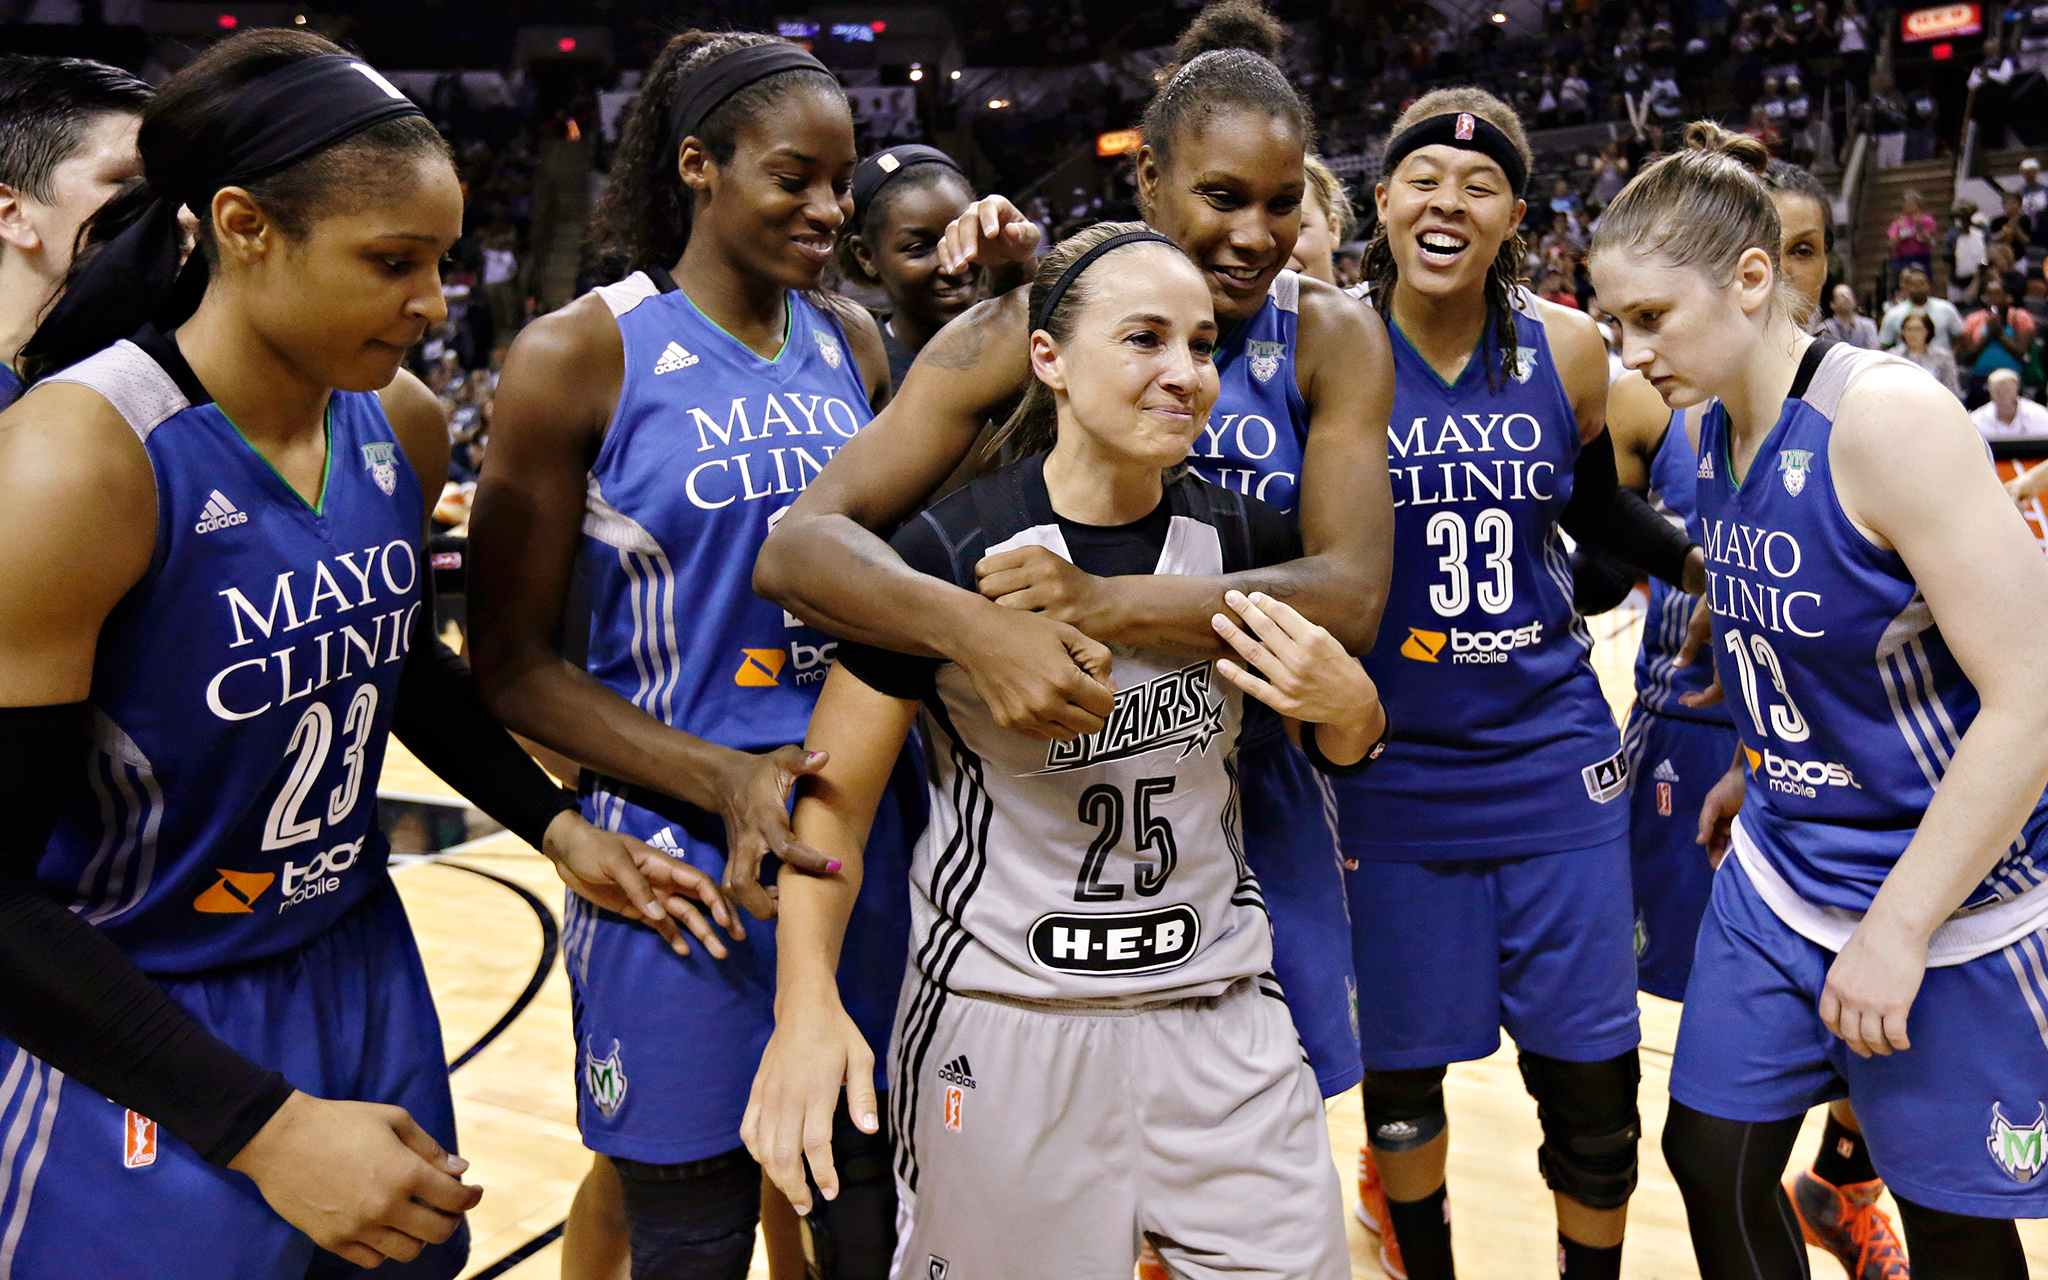 Minnesota Lynx players give Becky Hammon a fond farewell after eliminating  San Antonio in the Western Conference semifinals Saturday. Hammon is retiring after 16 seasons to become an assistant coach with the NBA's San Antonio Spurs.